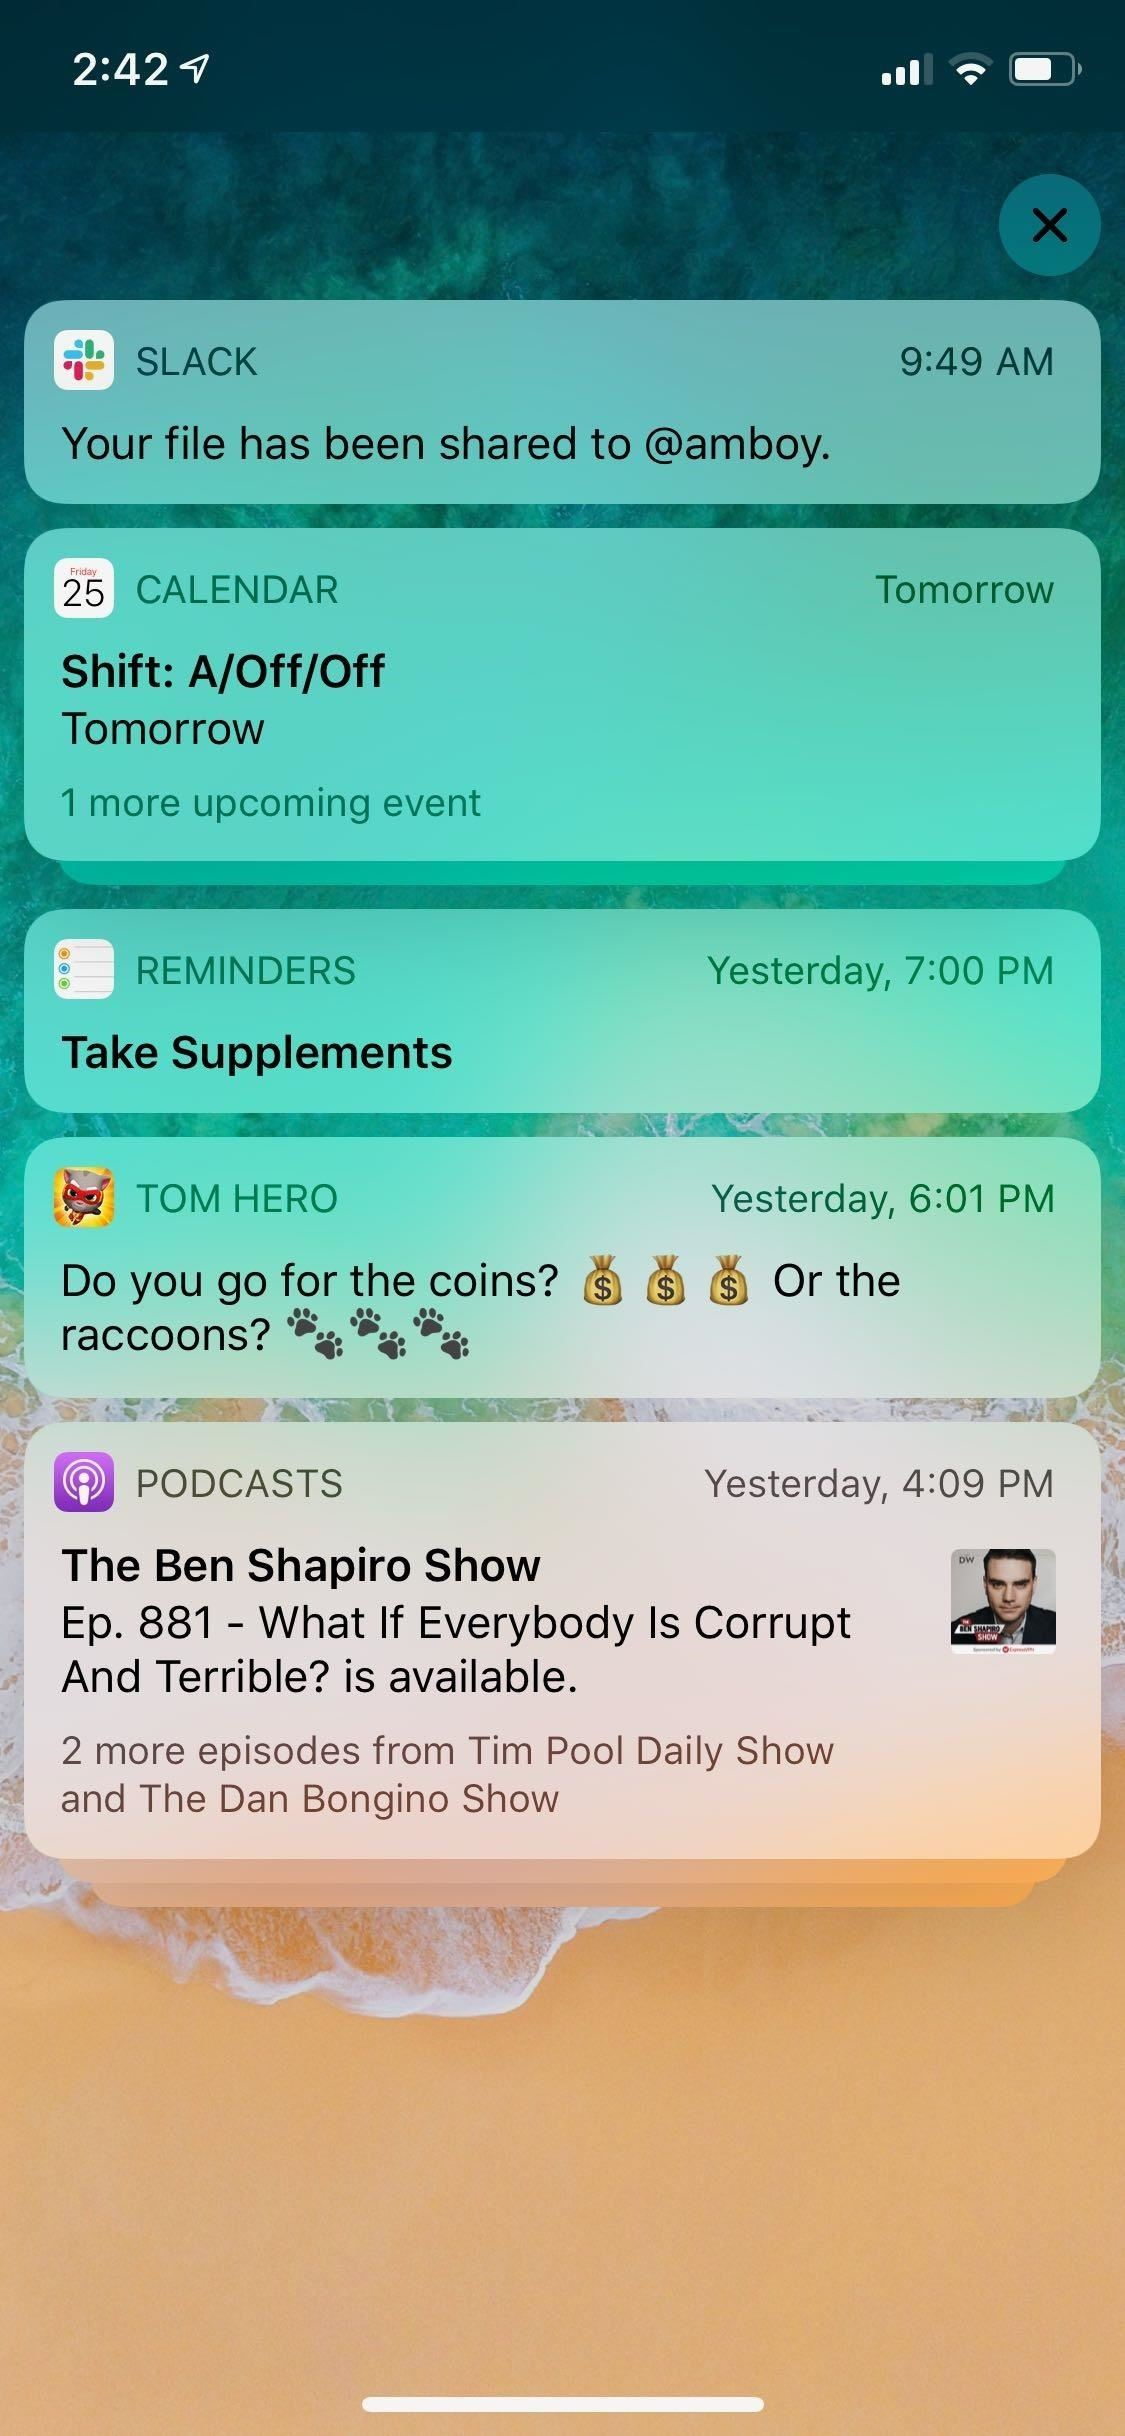 The 10 best message center tweaks for your iPhone